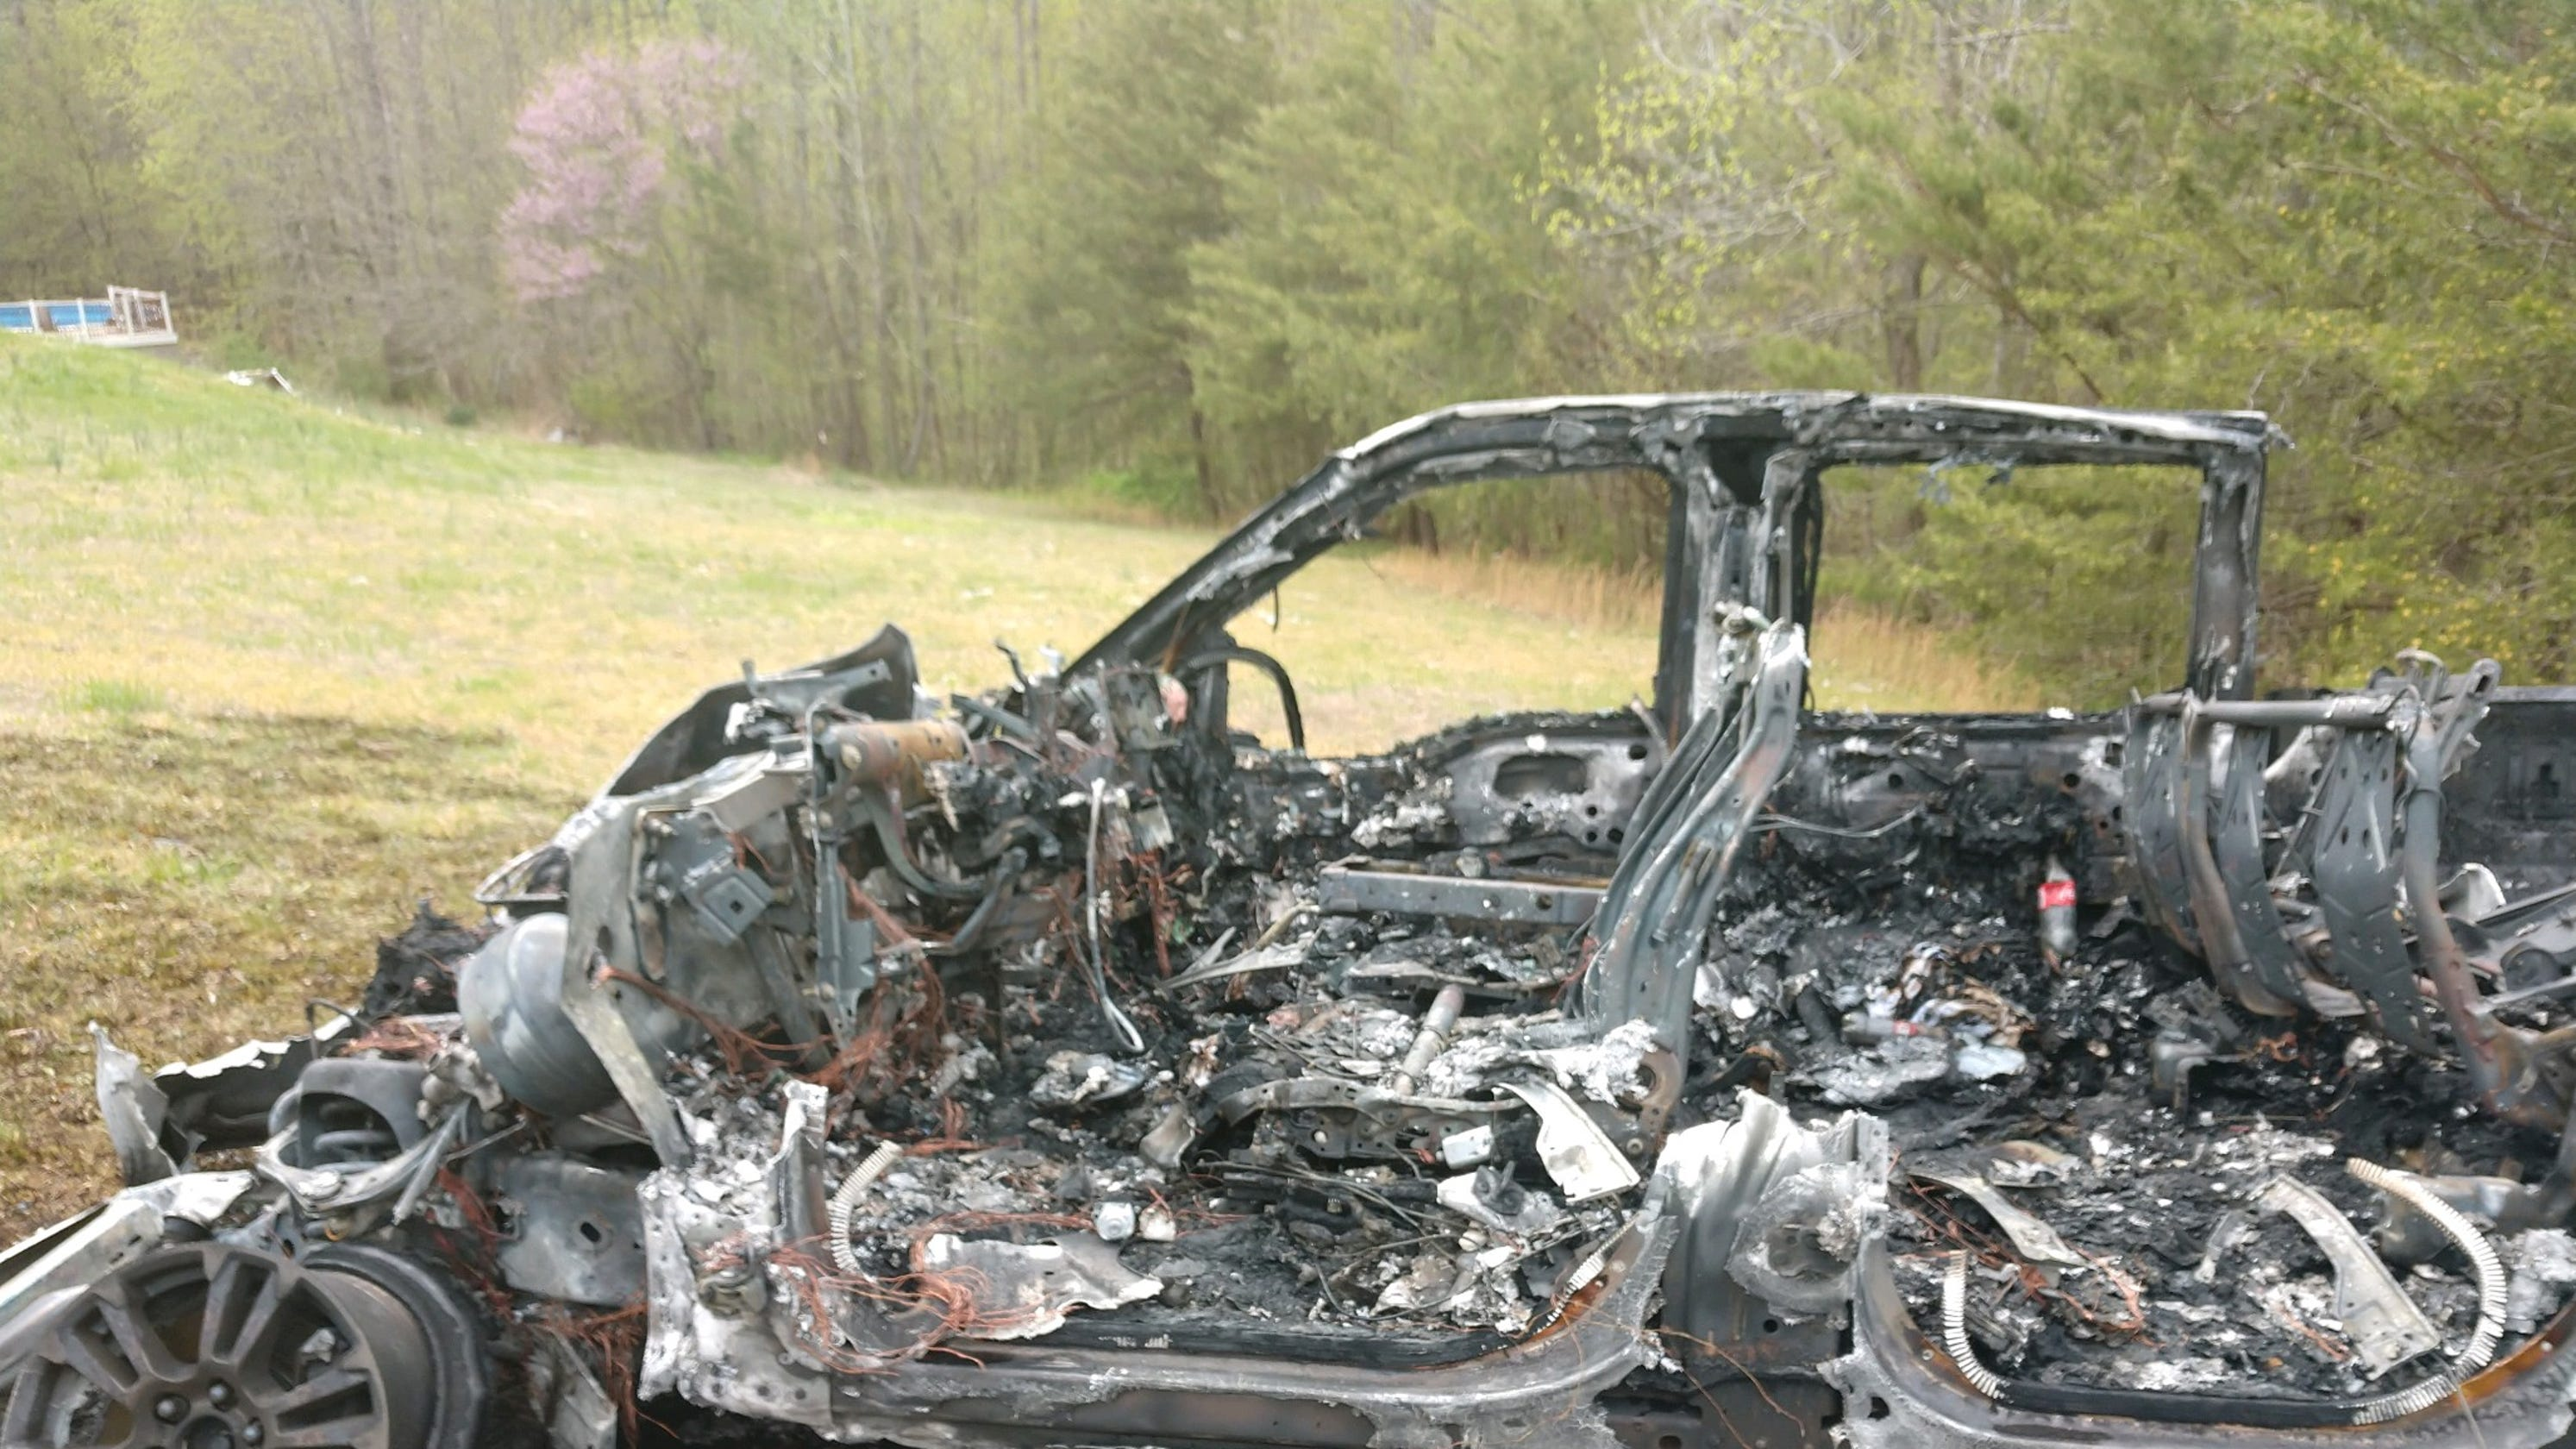 Cheatham Co  911: Avoid intersection after fiery multi